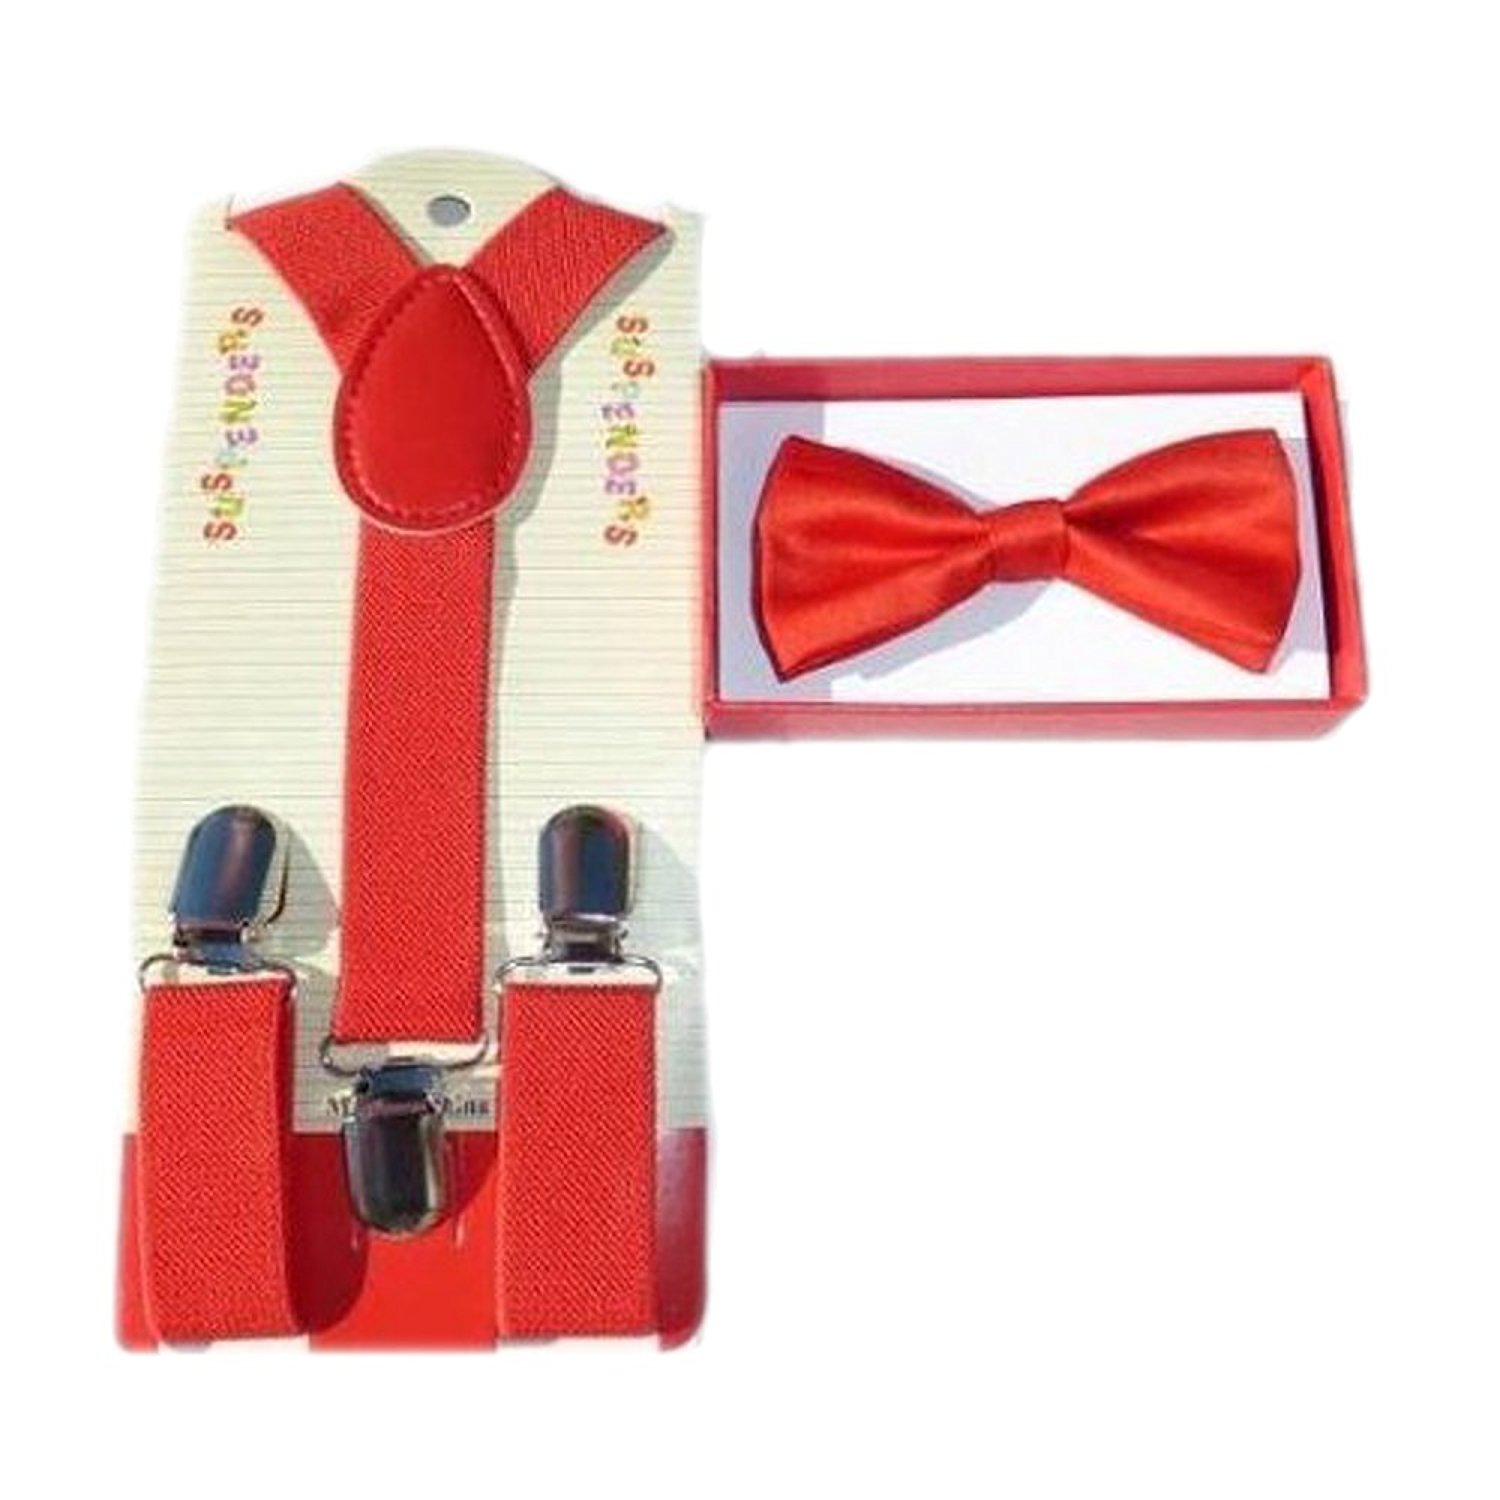 Amazon.com: Baby Toddler Kids Children Boys Girls Red Bow Tie ...